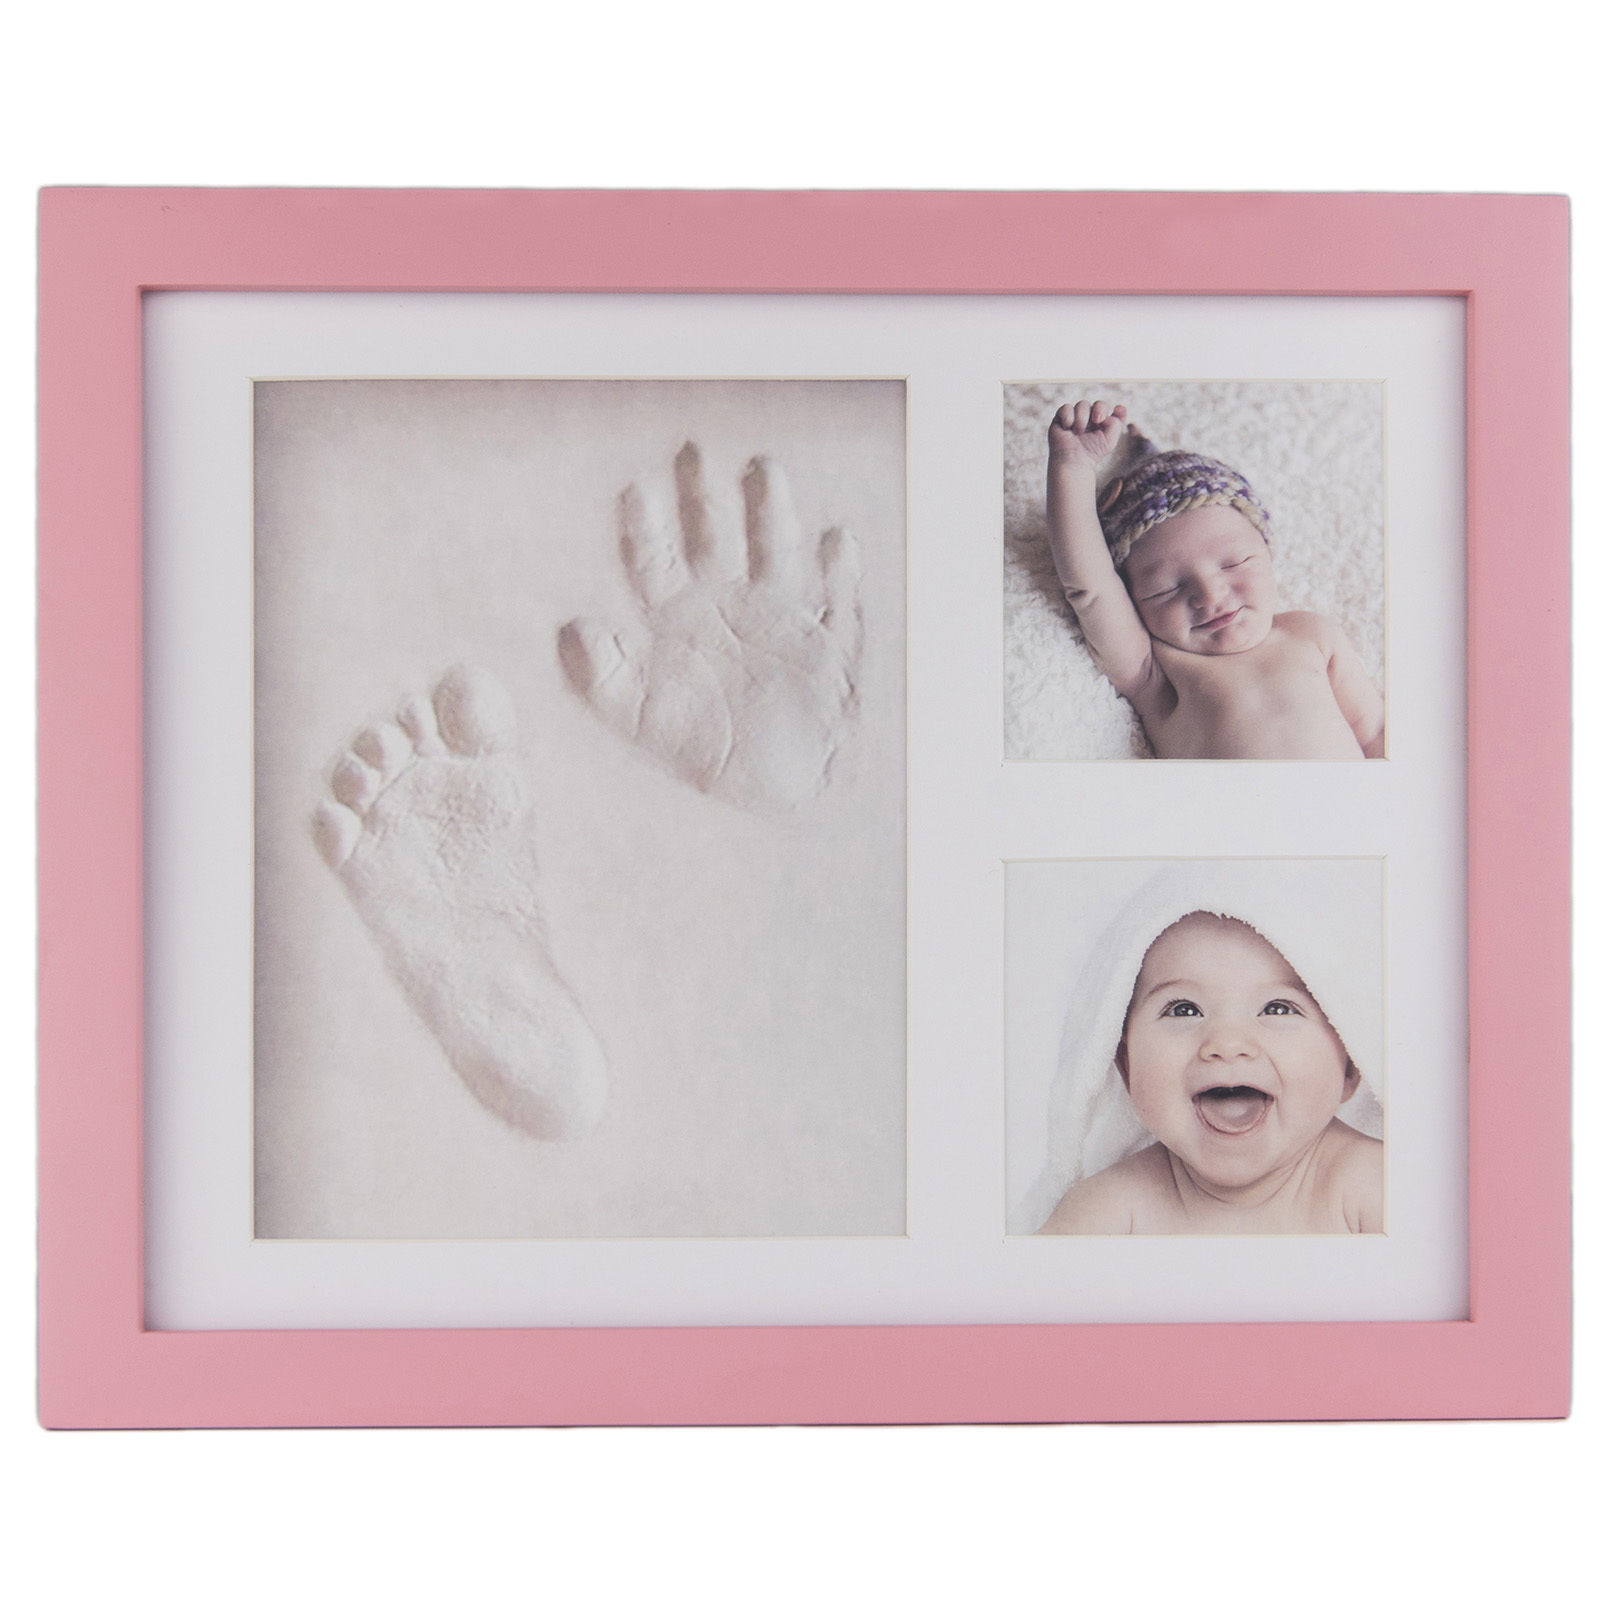 Footprint Non-Toxic Clay Casting Kit Baby Keepsake Souvenirs DIY Baby Hand Print Kit Hand-Casting-Kit For Newborns Baby Gift Kit